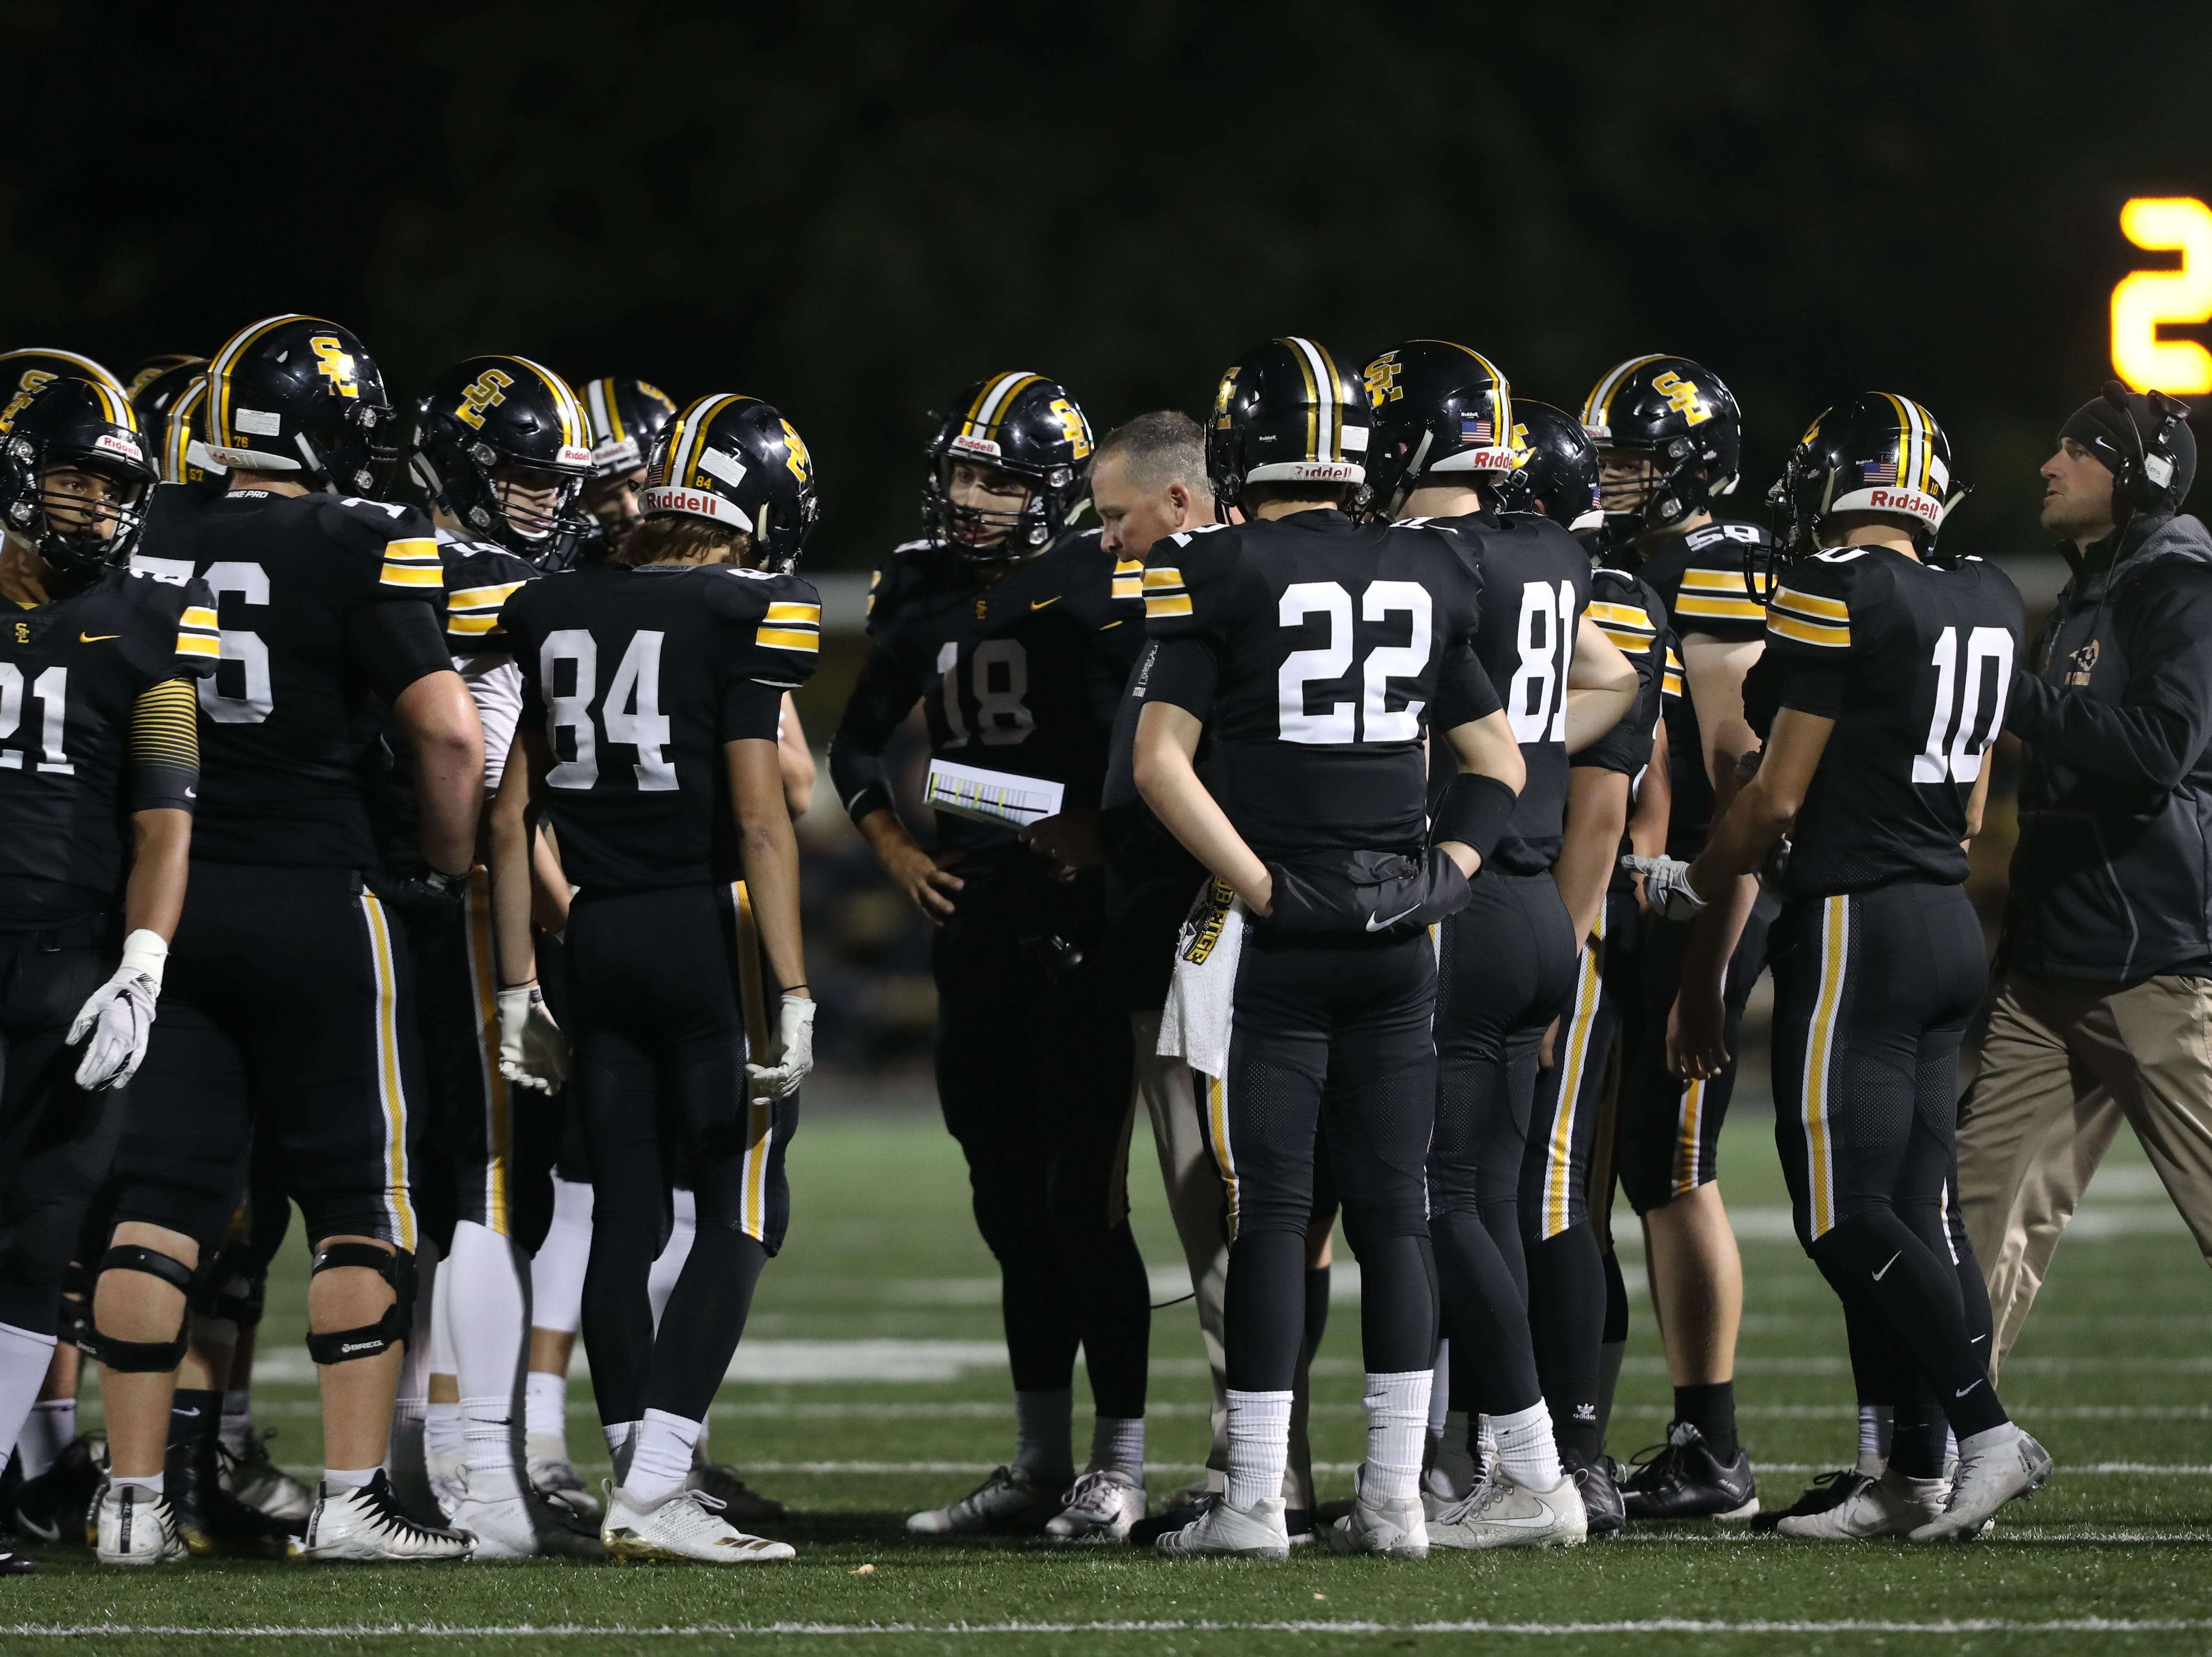 Southeast Polk Rams head coach Brad Zelenovich talks to his Rams during their game wit the Marshalltown Bobcats at SE Polk Stadium. The Rams beat the Bobcats 56 to 7.